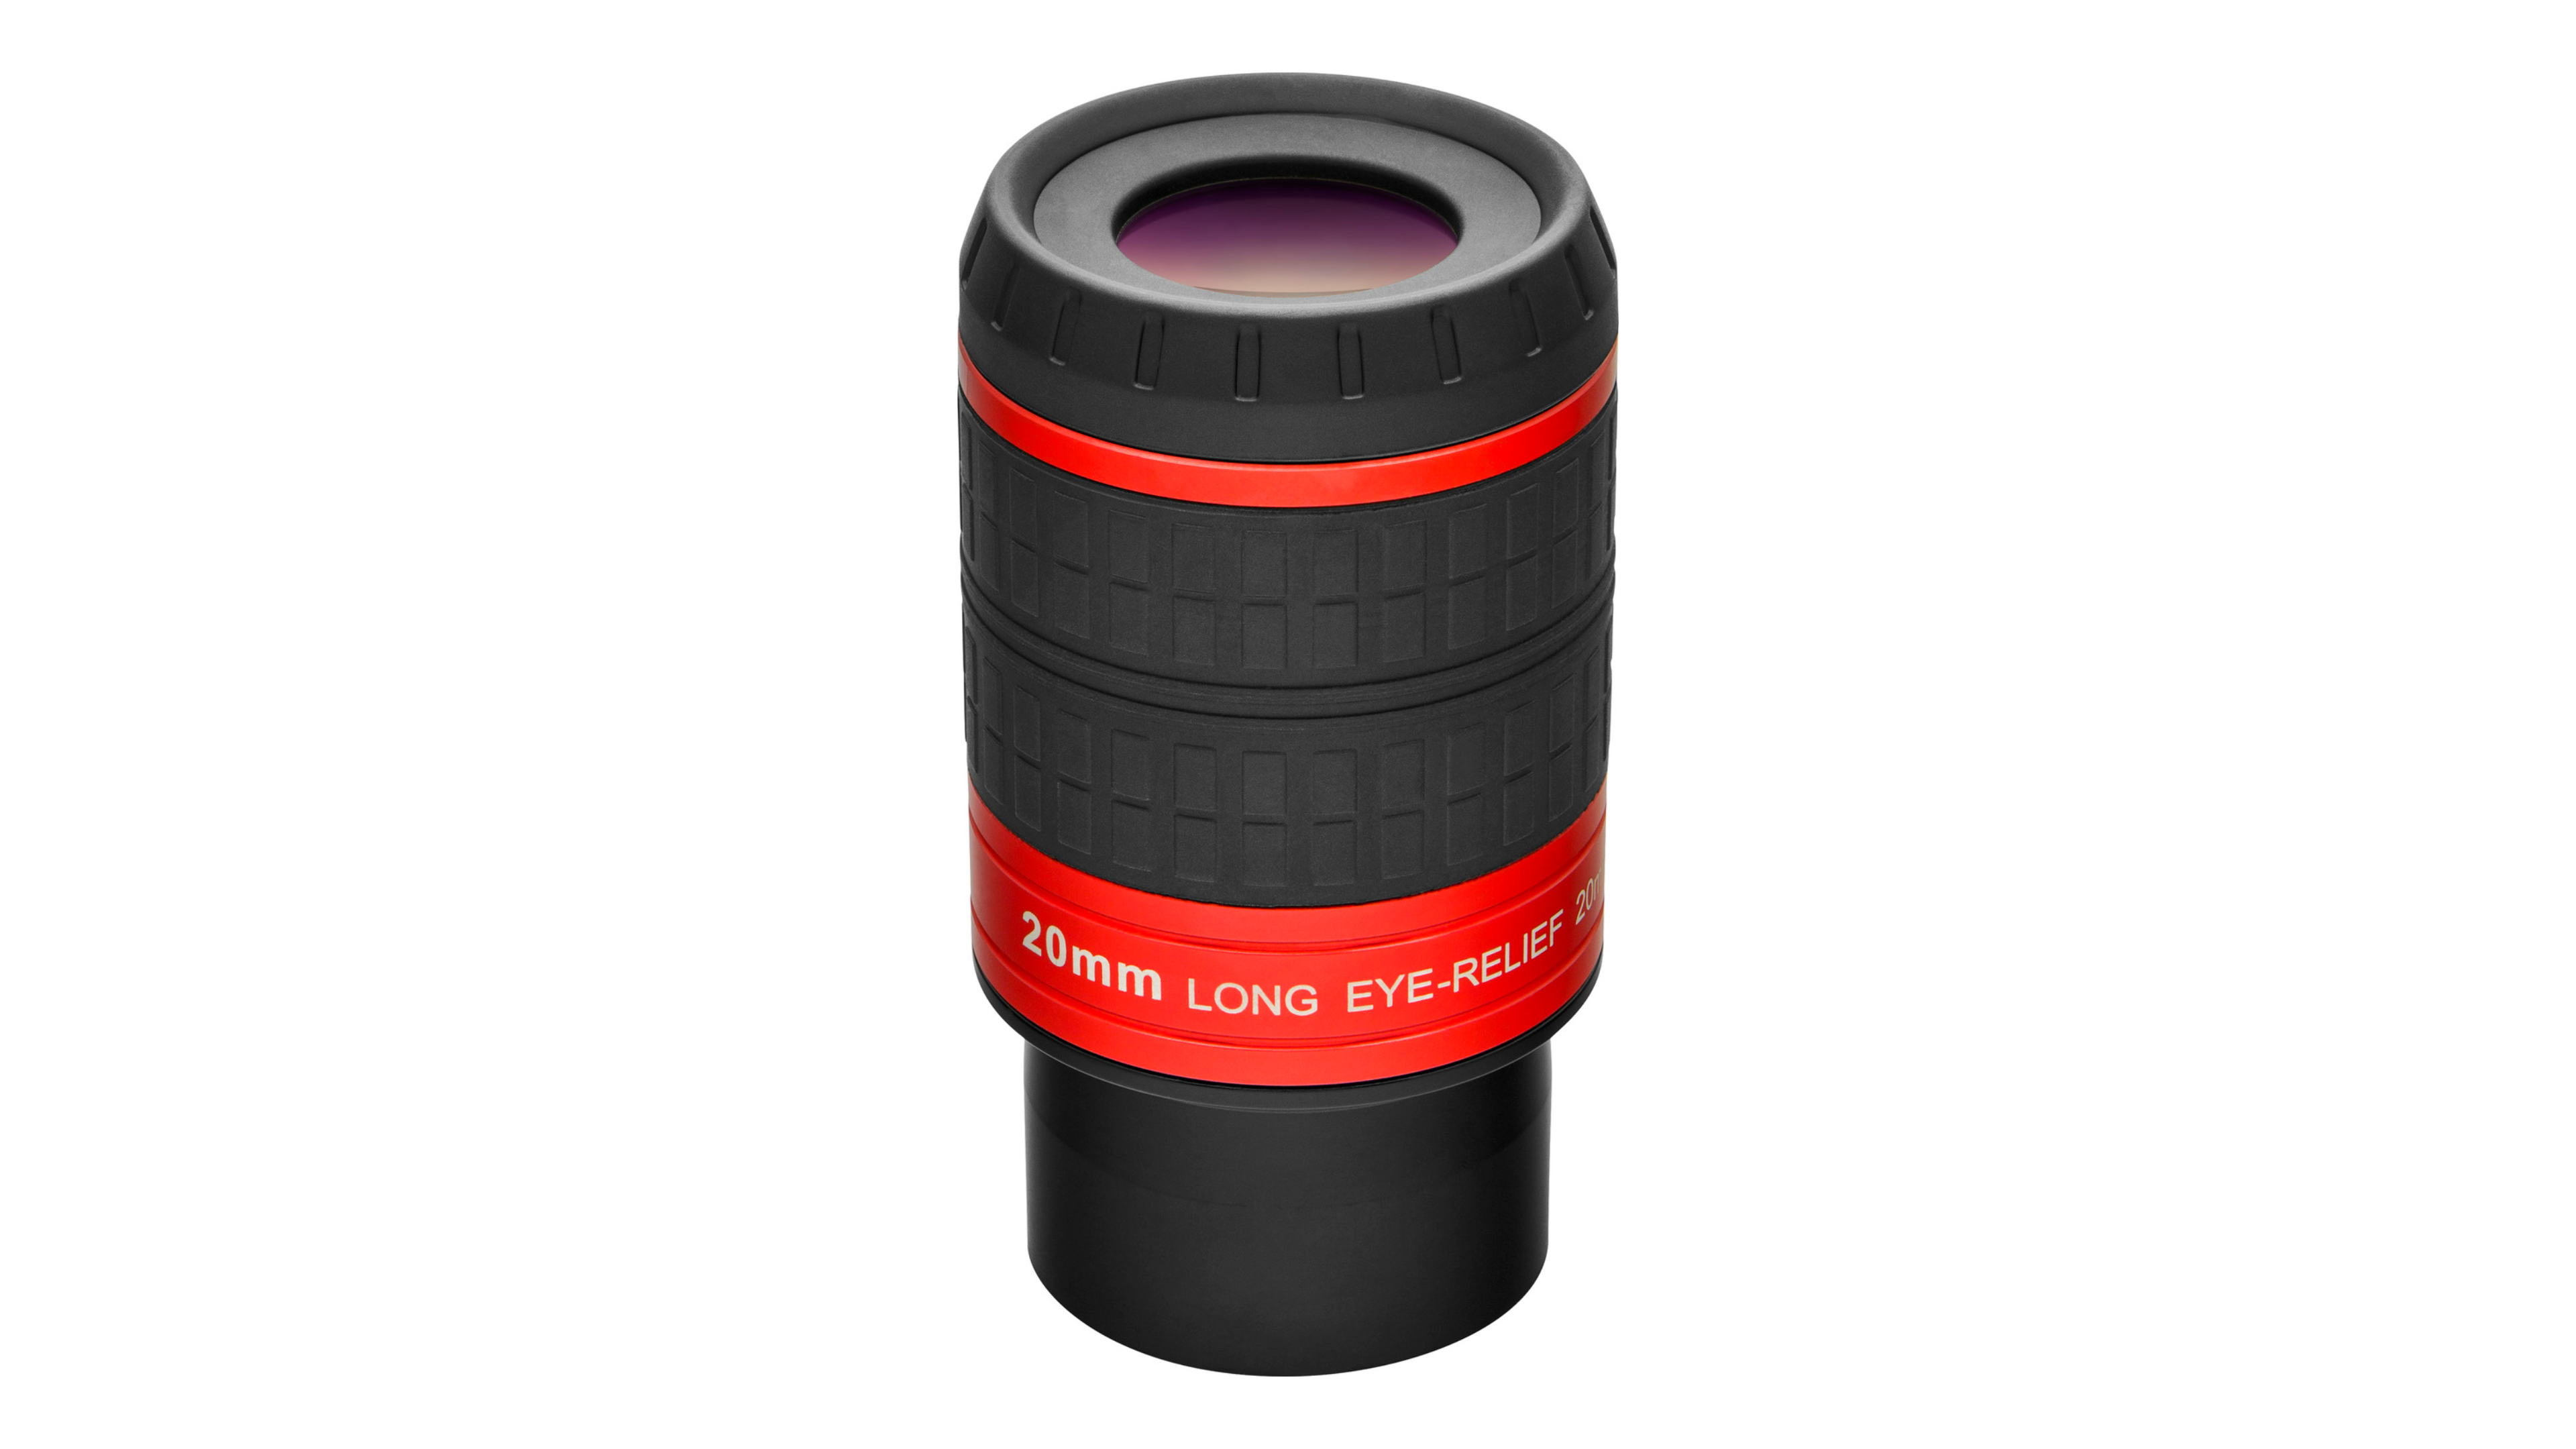 20mm Orion LHD 80 Degree Lanthanum Ultra-Wide Eyepiece 2in